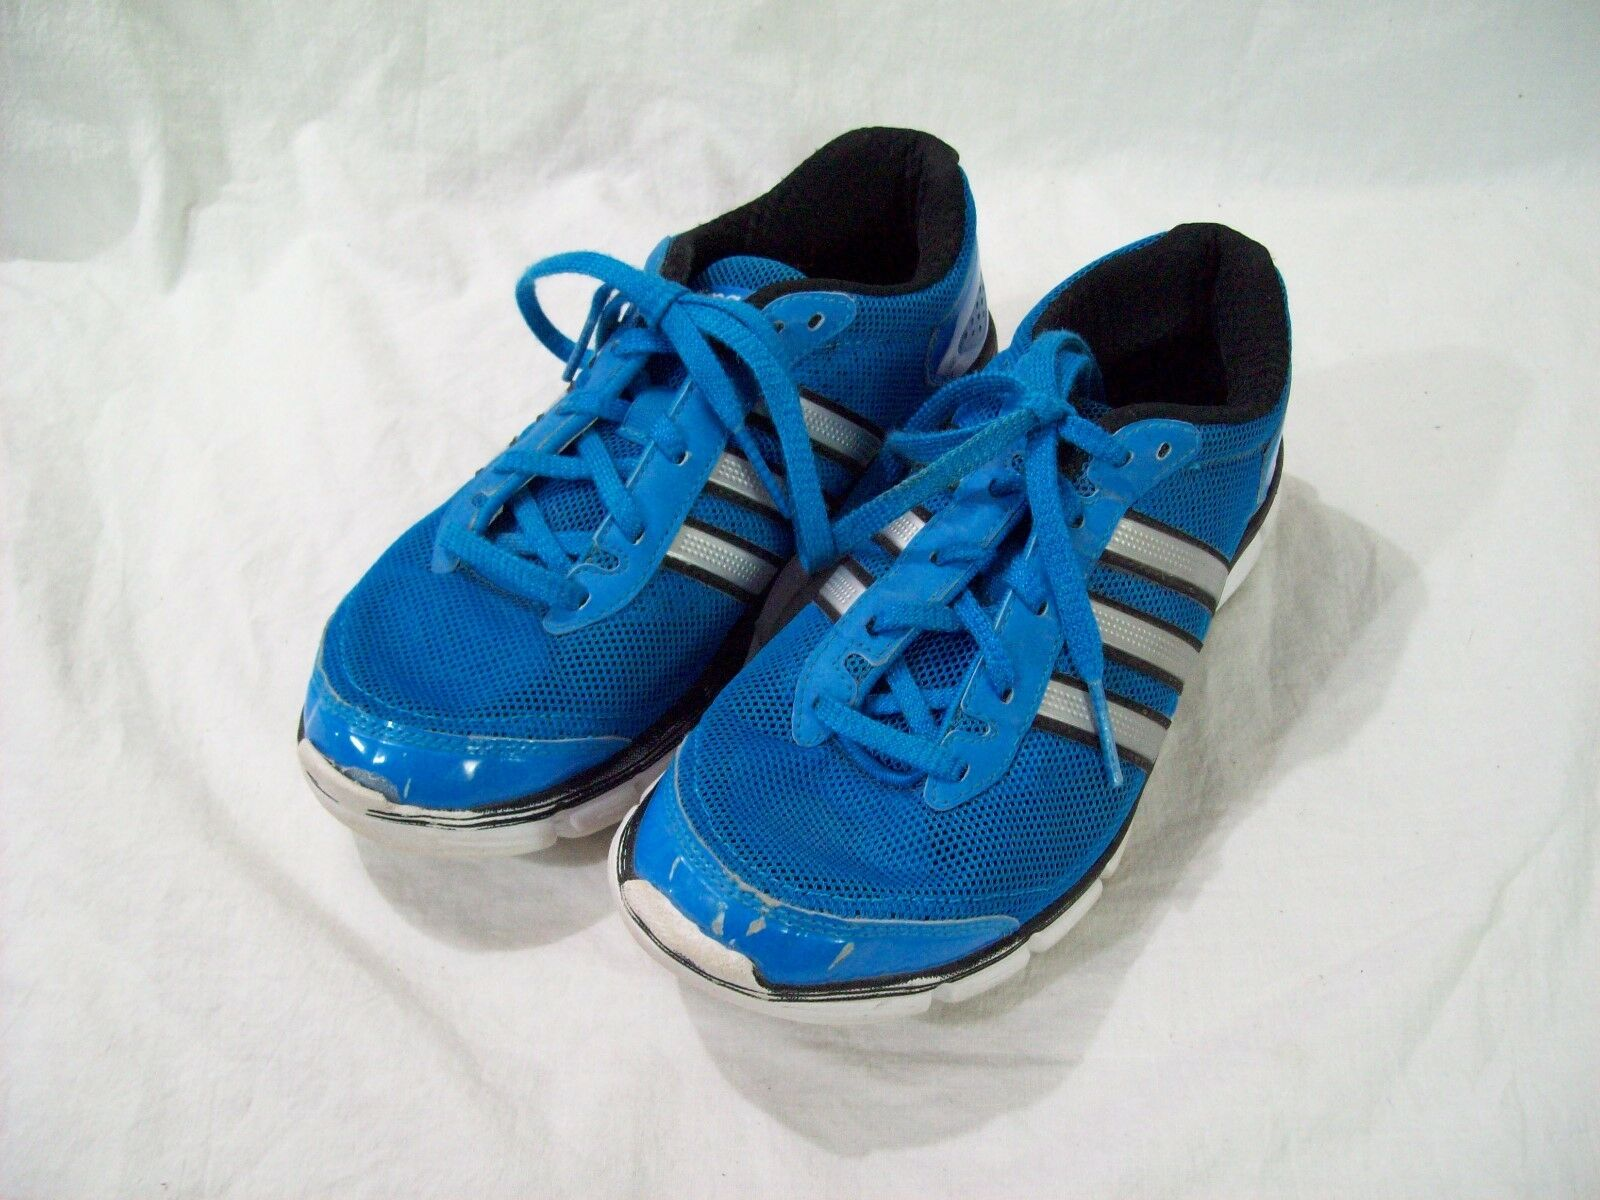 Adidas Climacool Women's Running Shoes Blue Silver sz 5